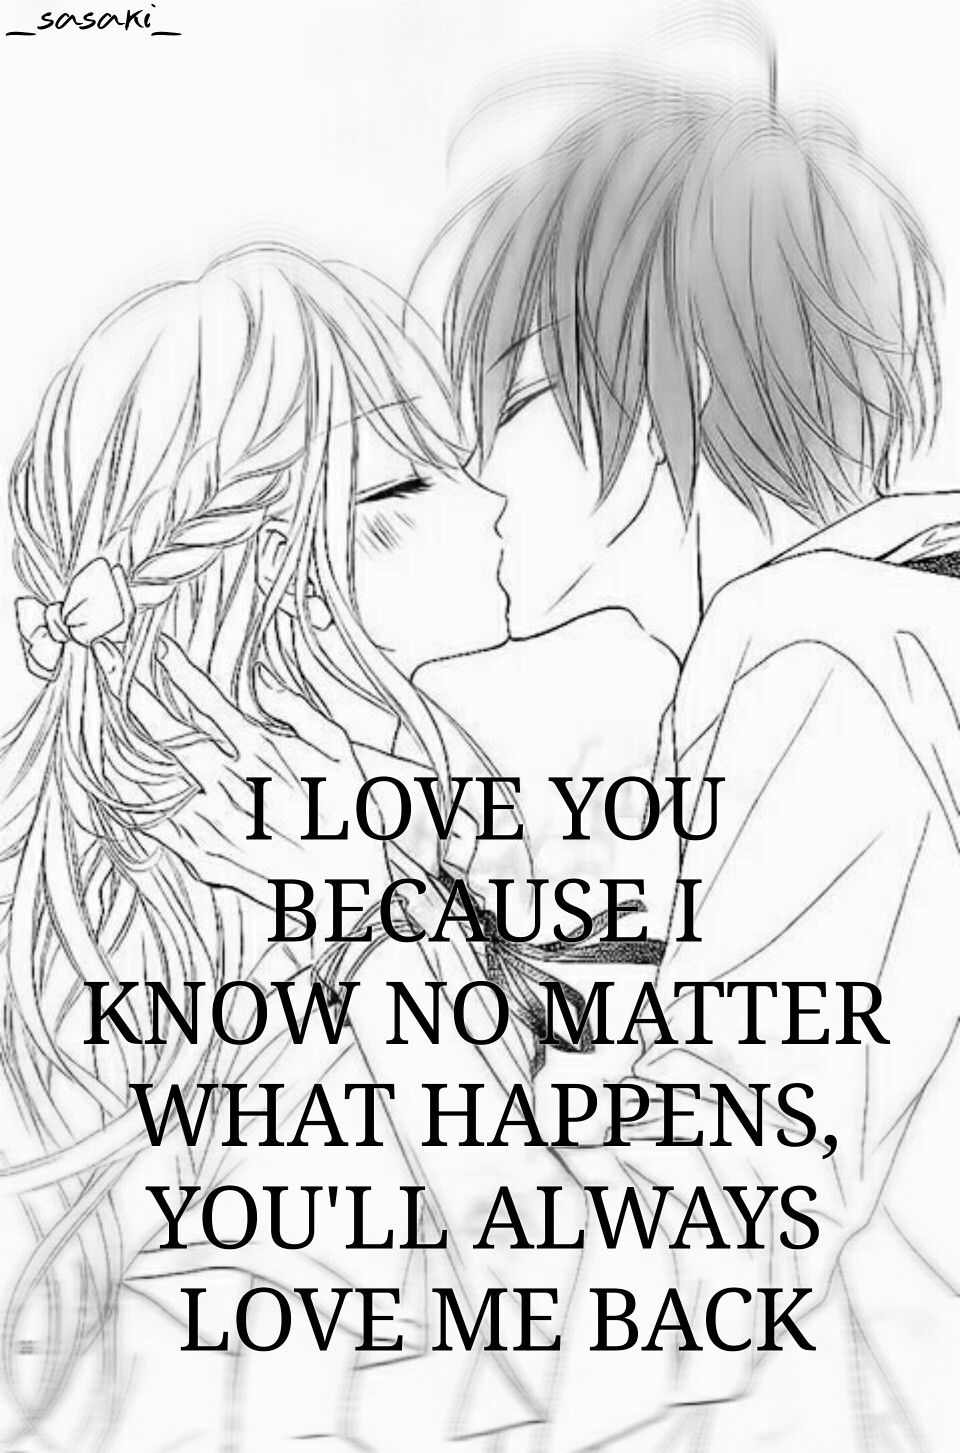 Love Anime Manga Quote for Valentines Day Σ(´∀`;) Cute